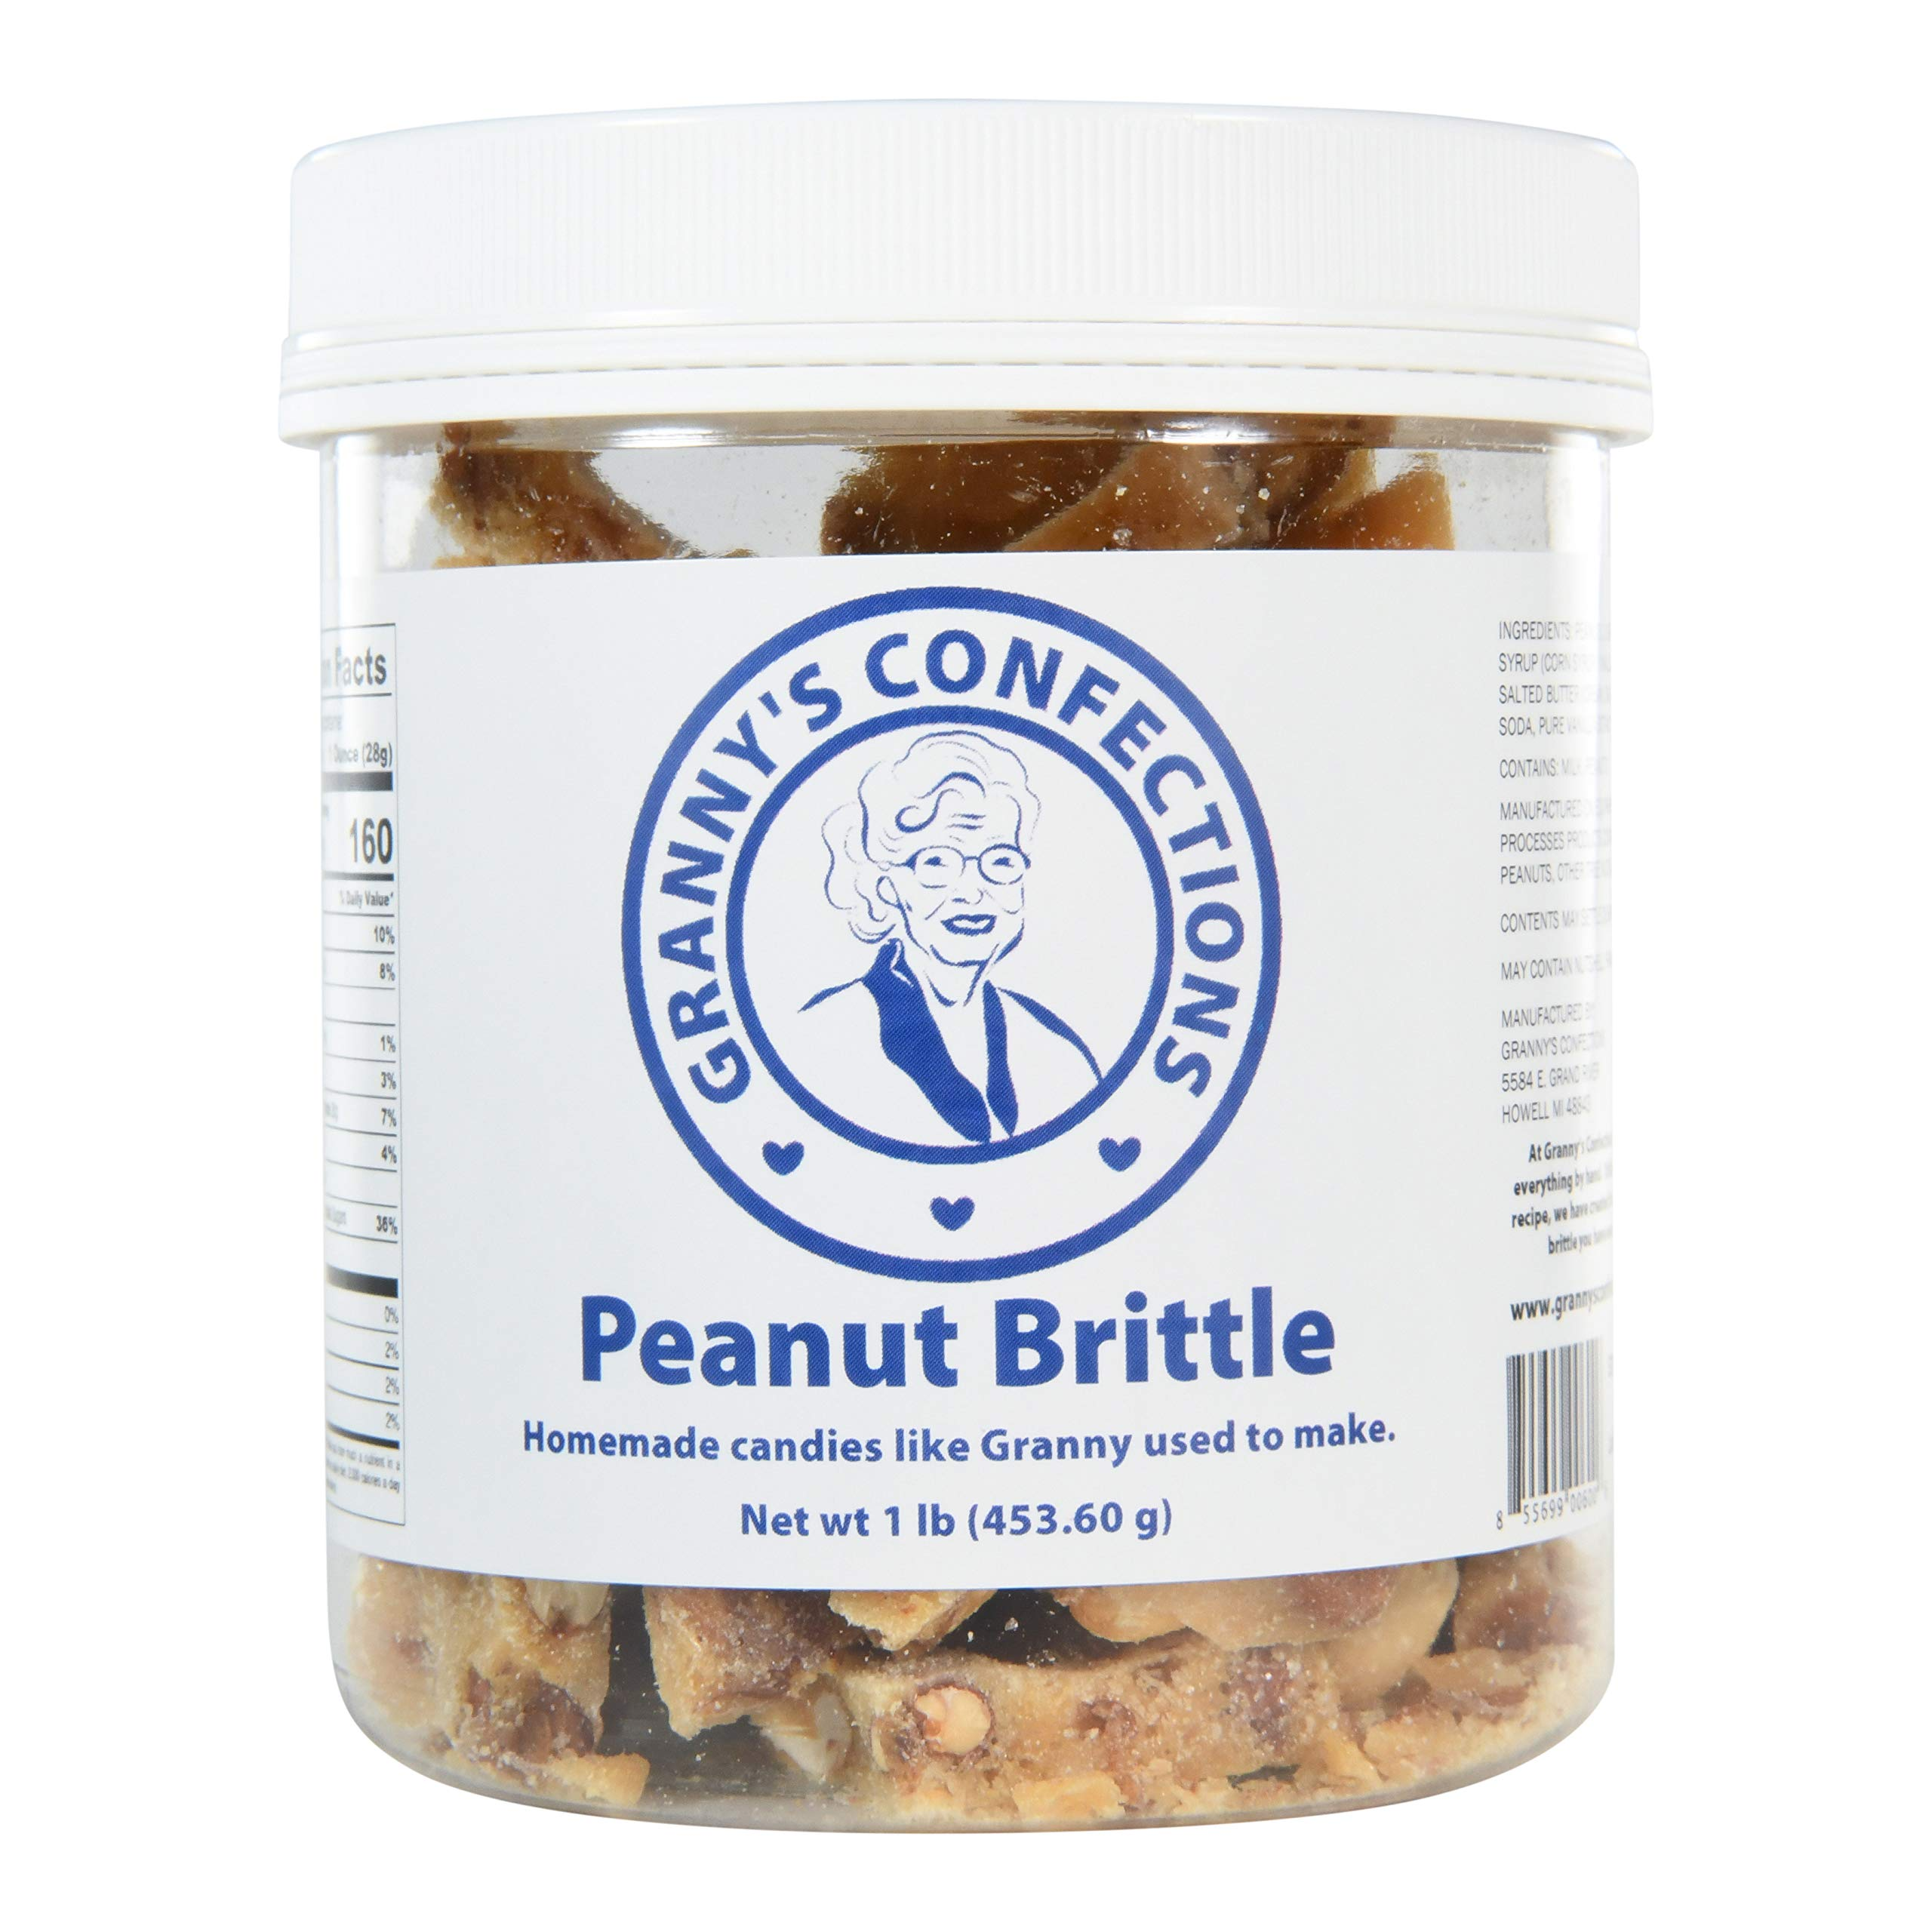 Handmade Peanut Brittle. Voted Best Peanut Brittle. - One Pound (16 oz) Container by Granny's Confections LLC